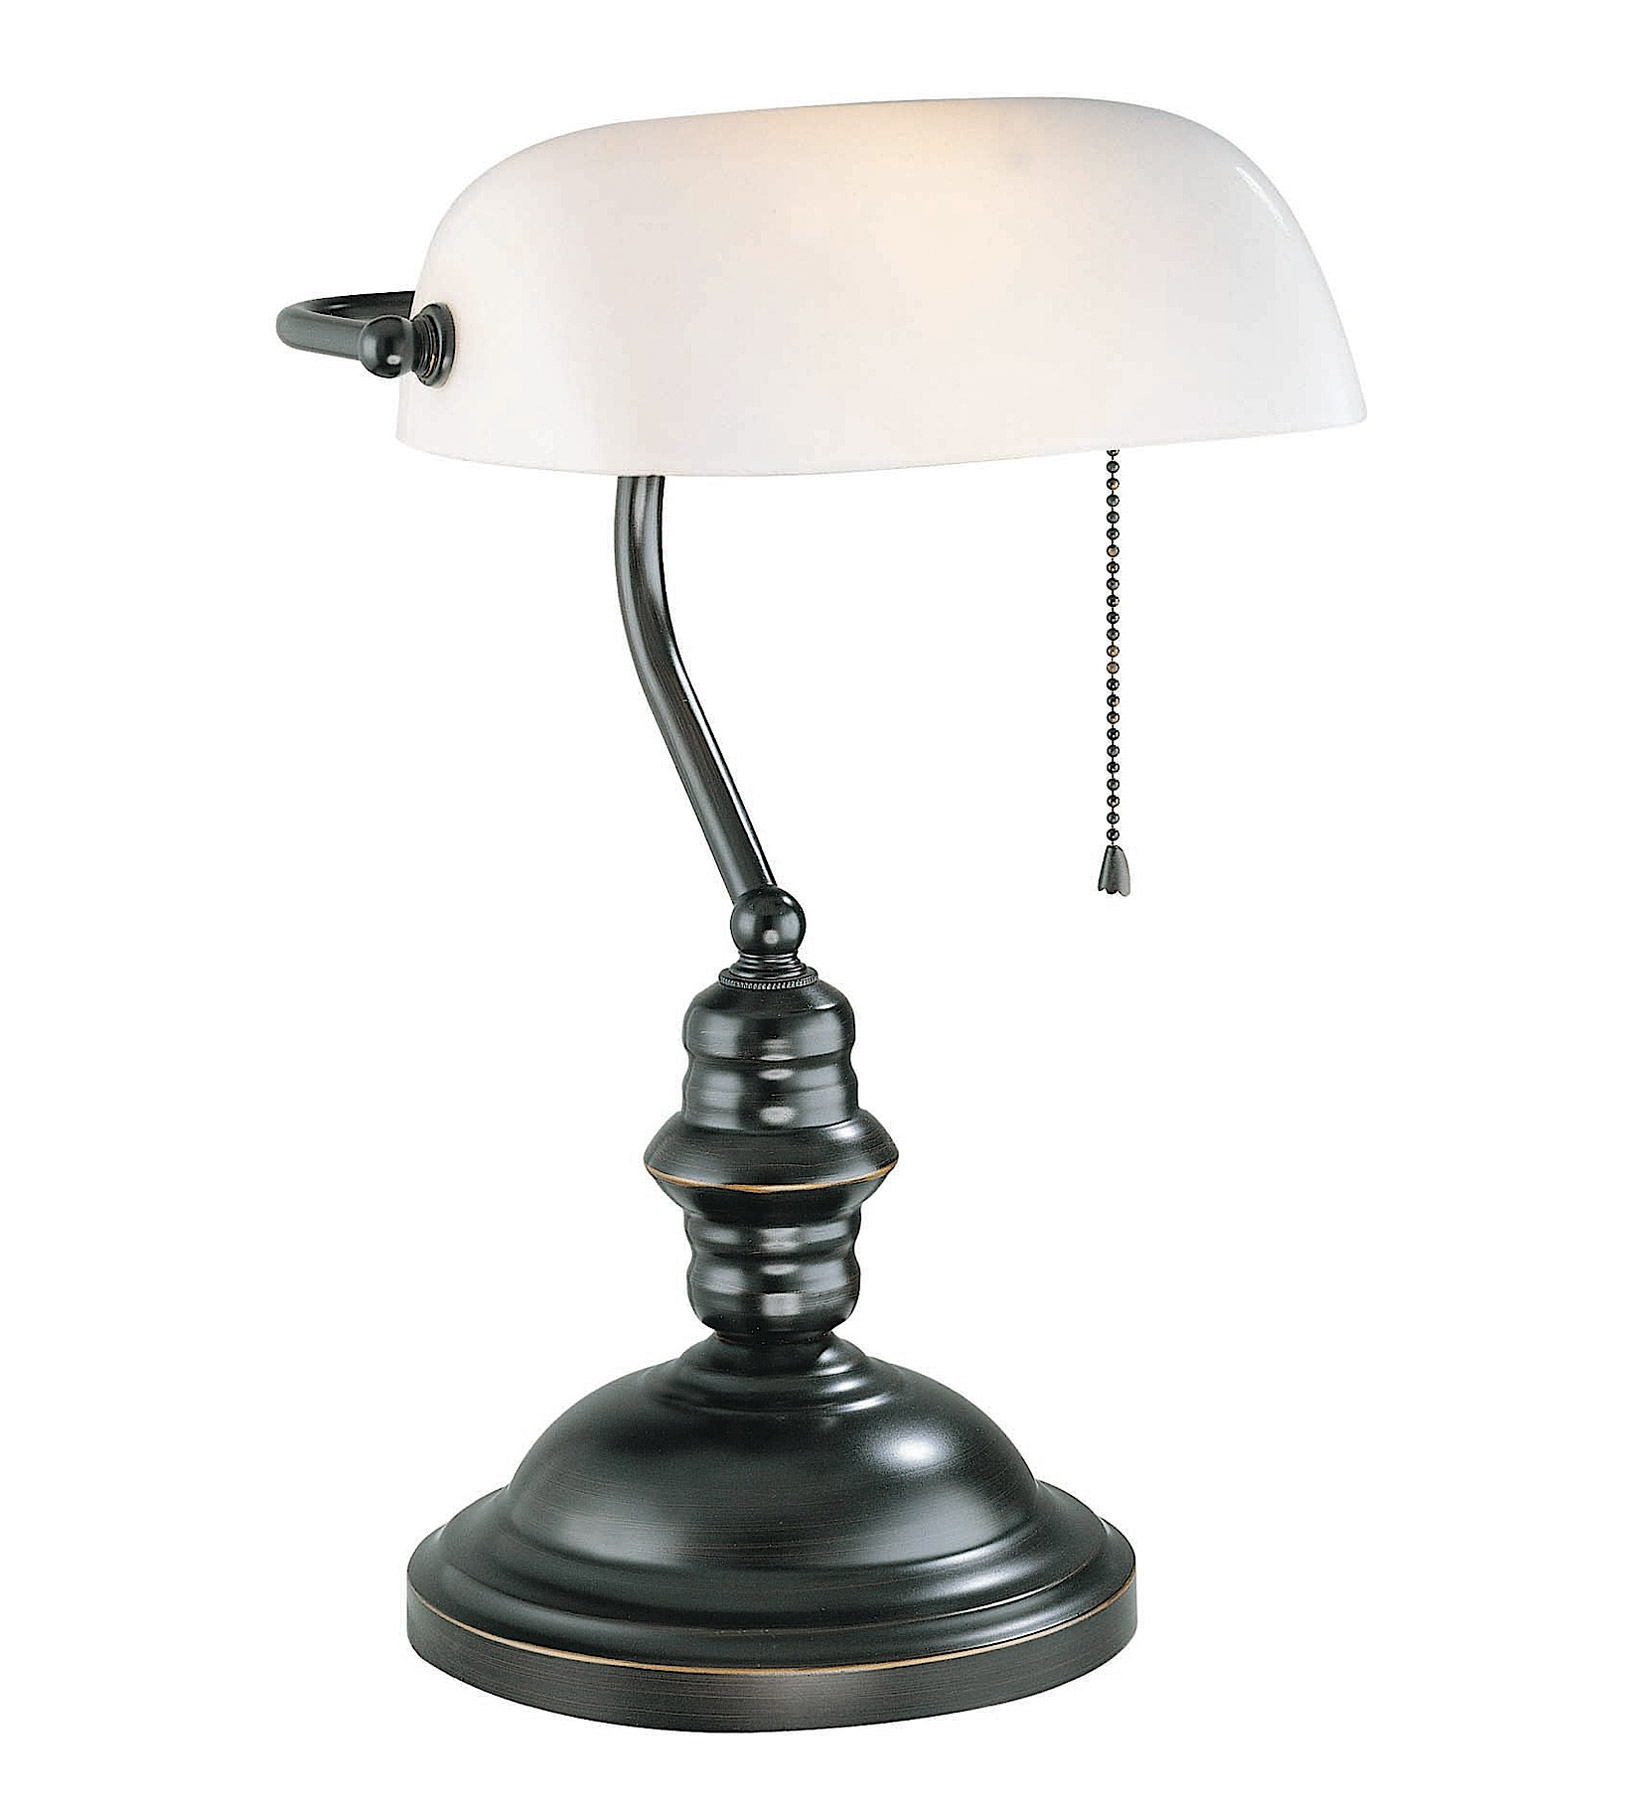 Lite source ls 224dbrz bankers desk lamp aloadofball Image collections